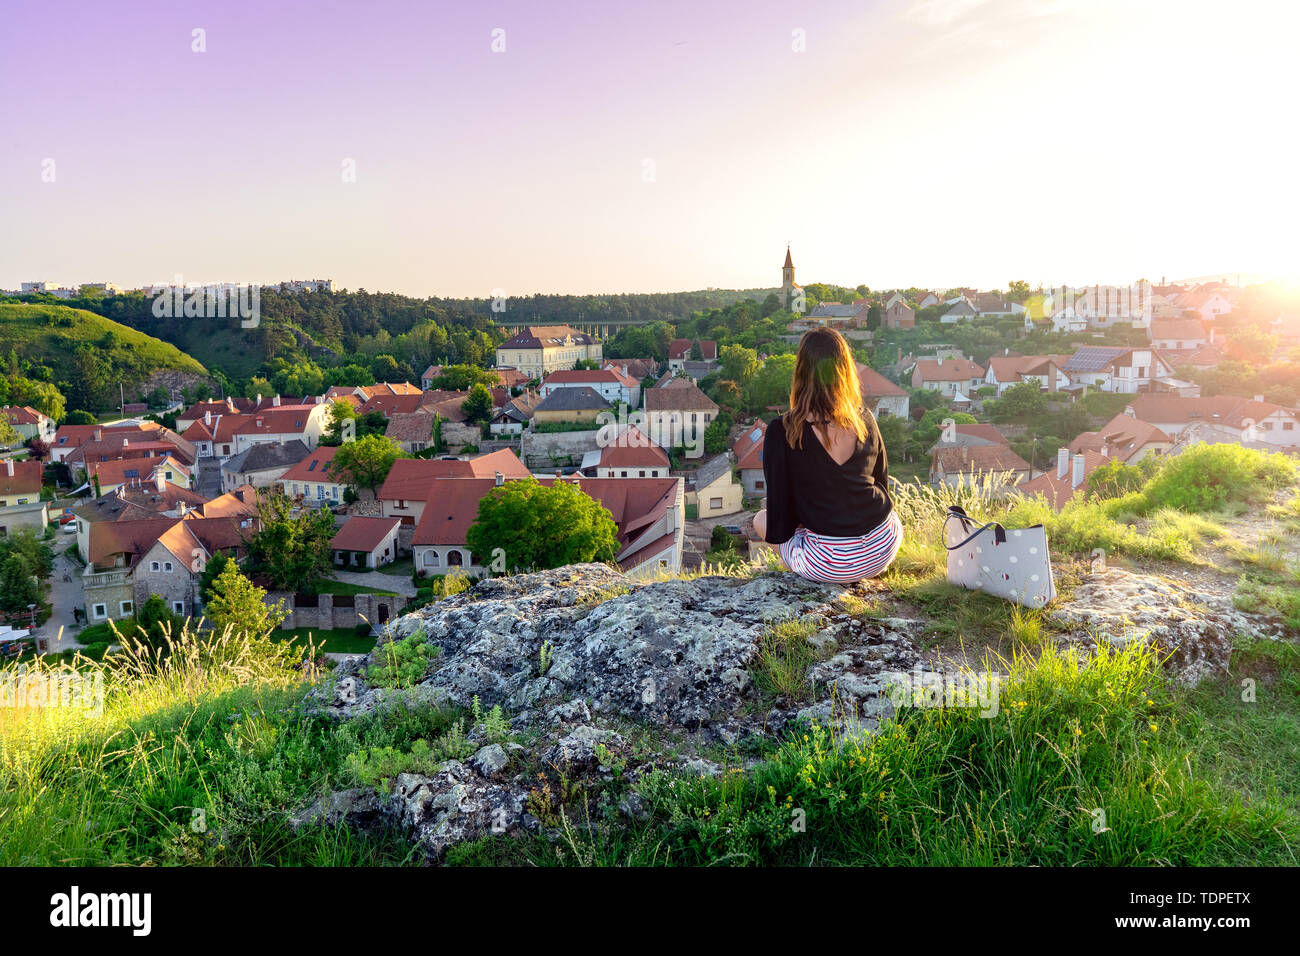 The green hill garden in the middle of old town Veszprem, Hungary with a woman sitting on the cliff enjoying the view Stock Photo